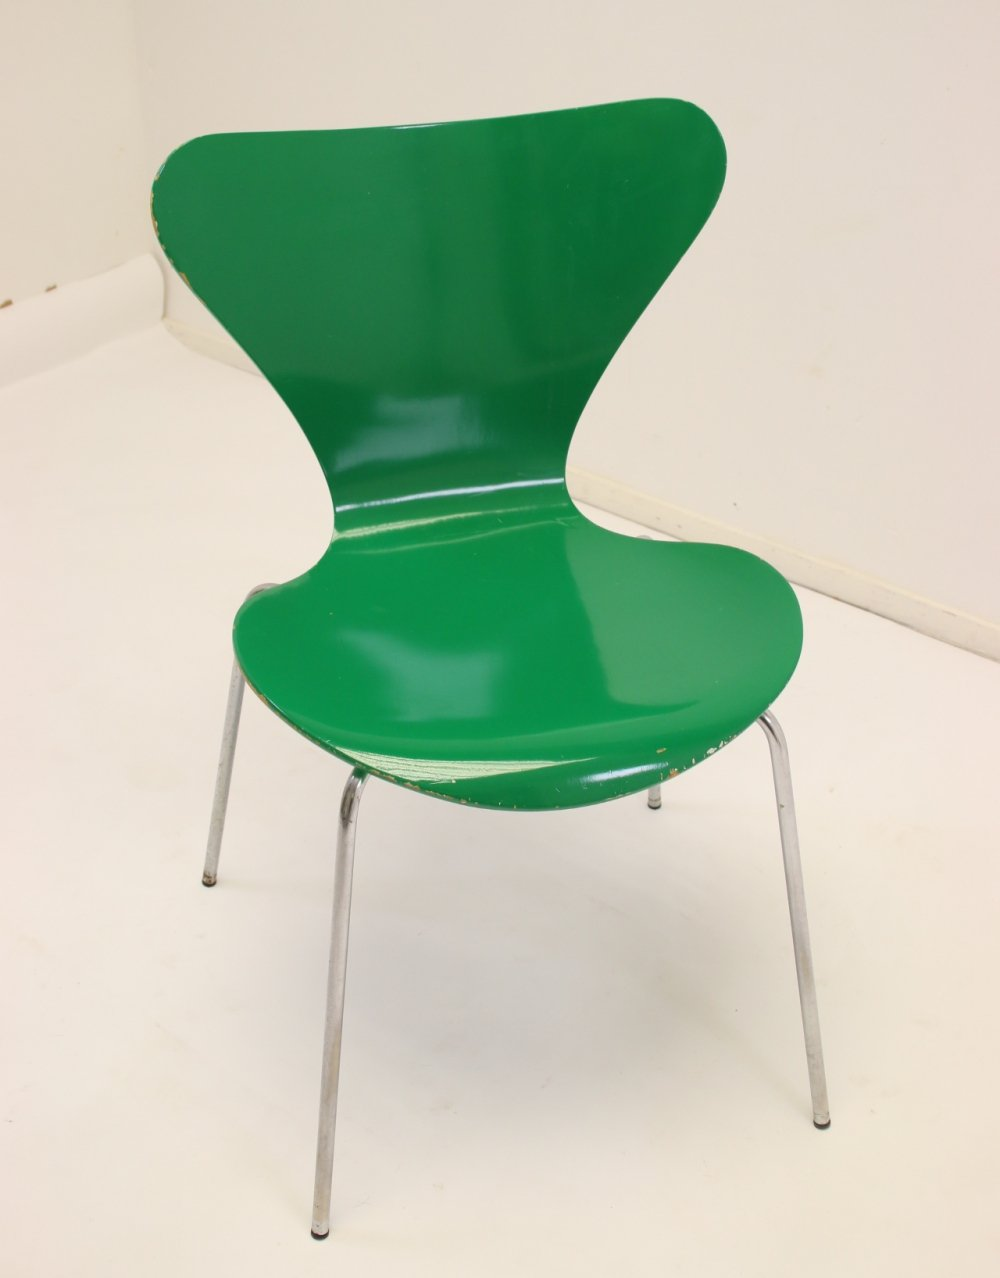 Model 3107 dining chair in green by Arne Jacobsen, 1979